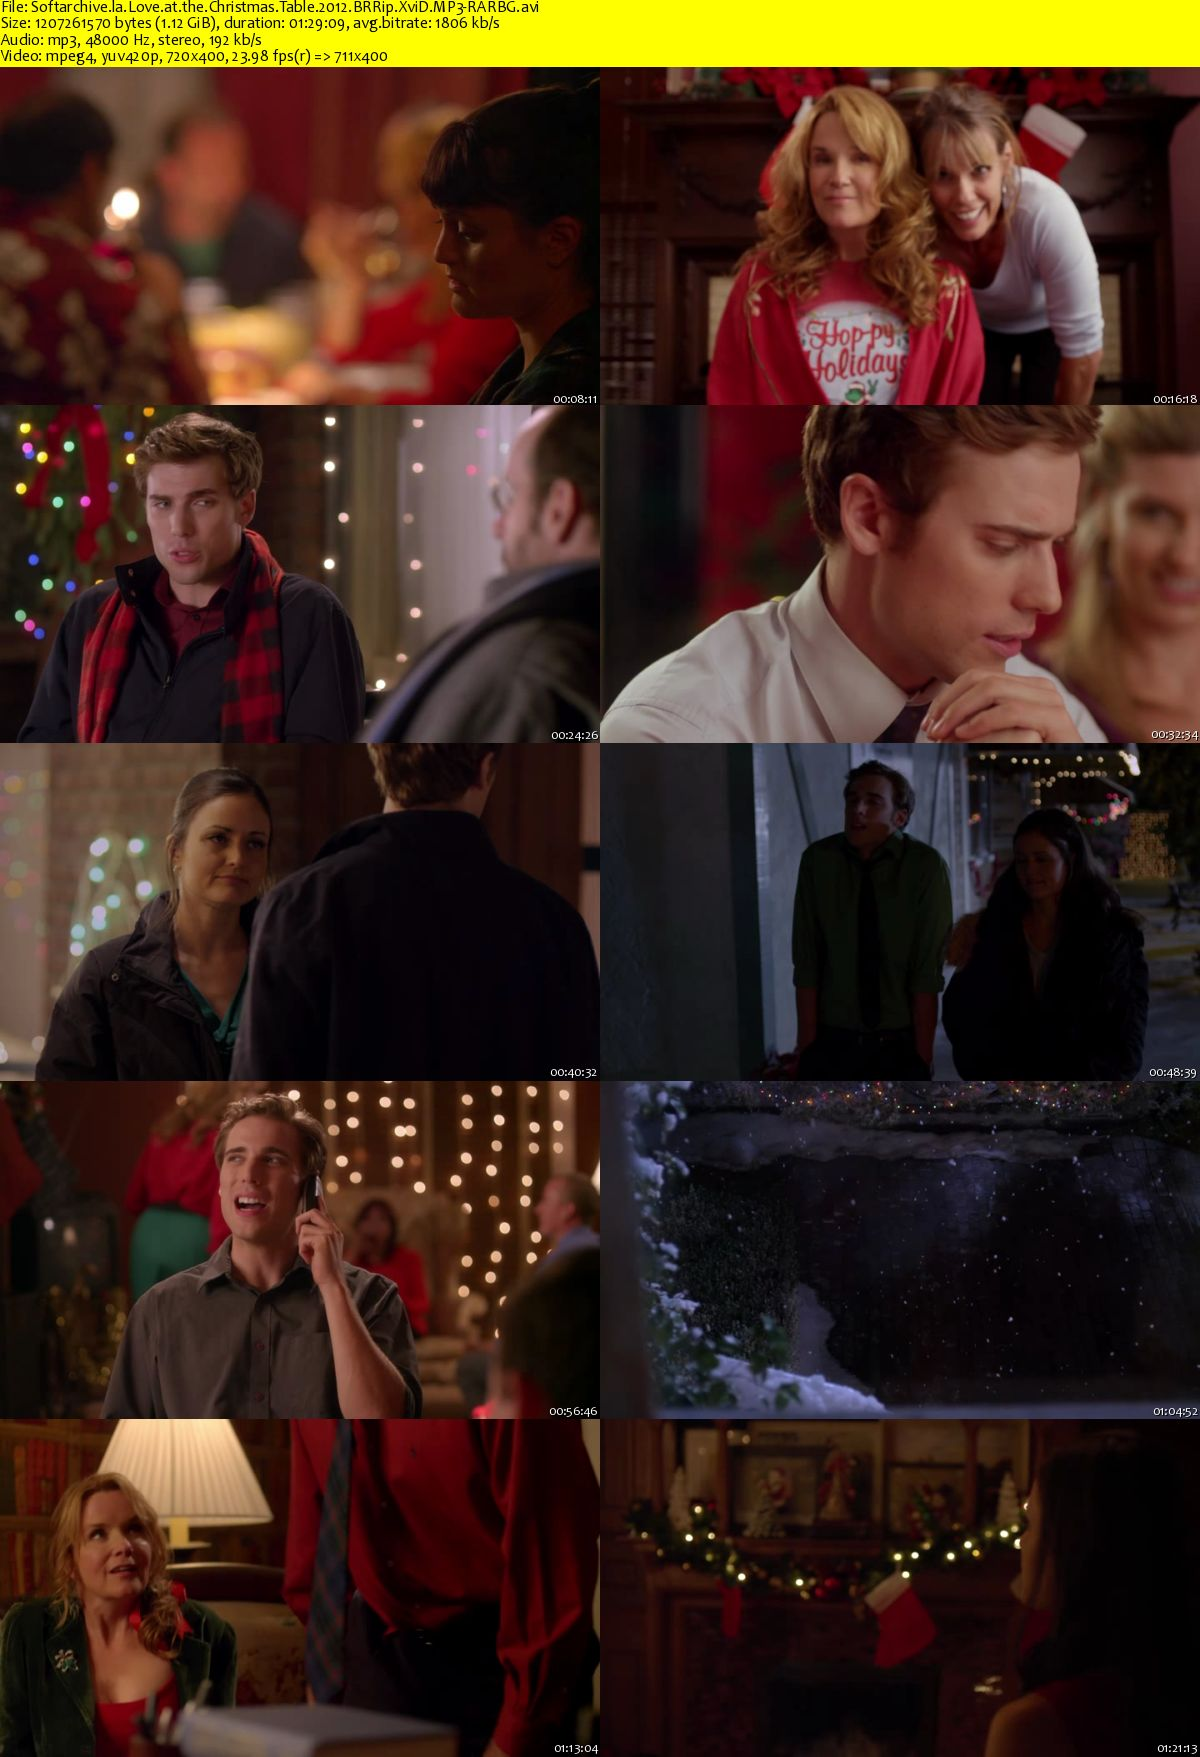 Love At The Christmas Table.Download Love At The Christmas Table 2012 Brrip Xvid Mp3